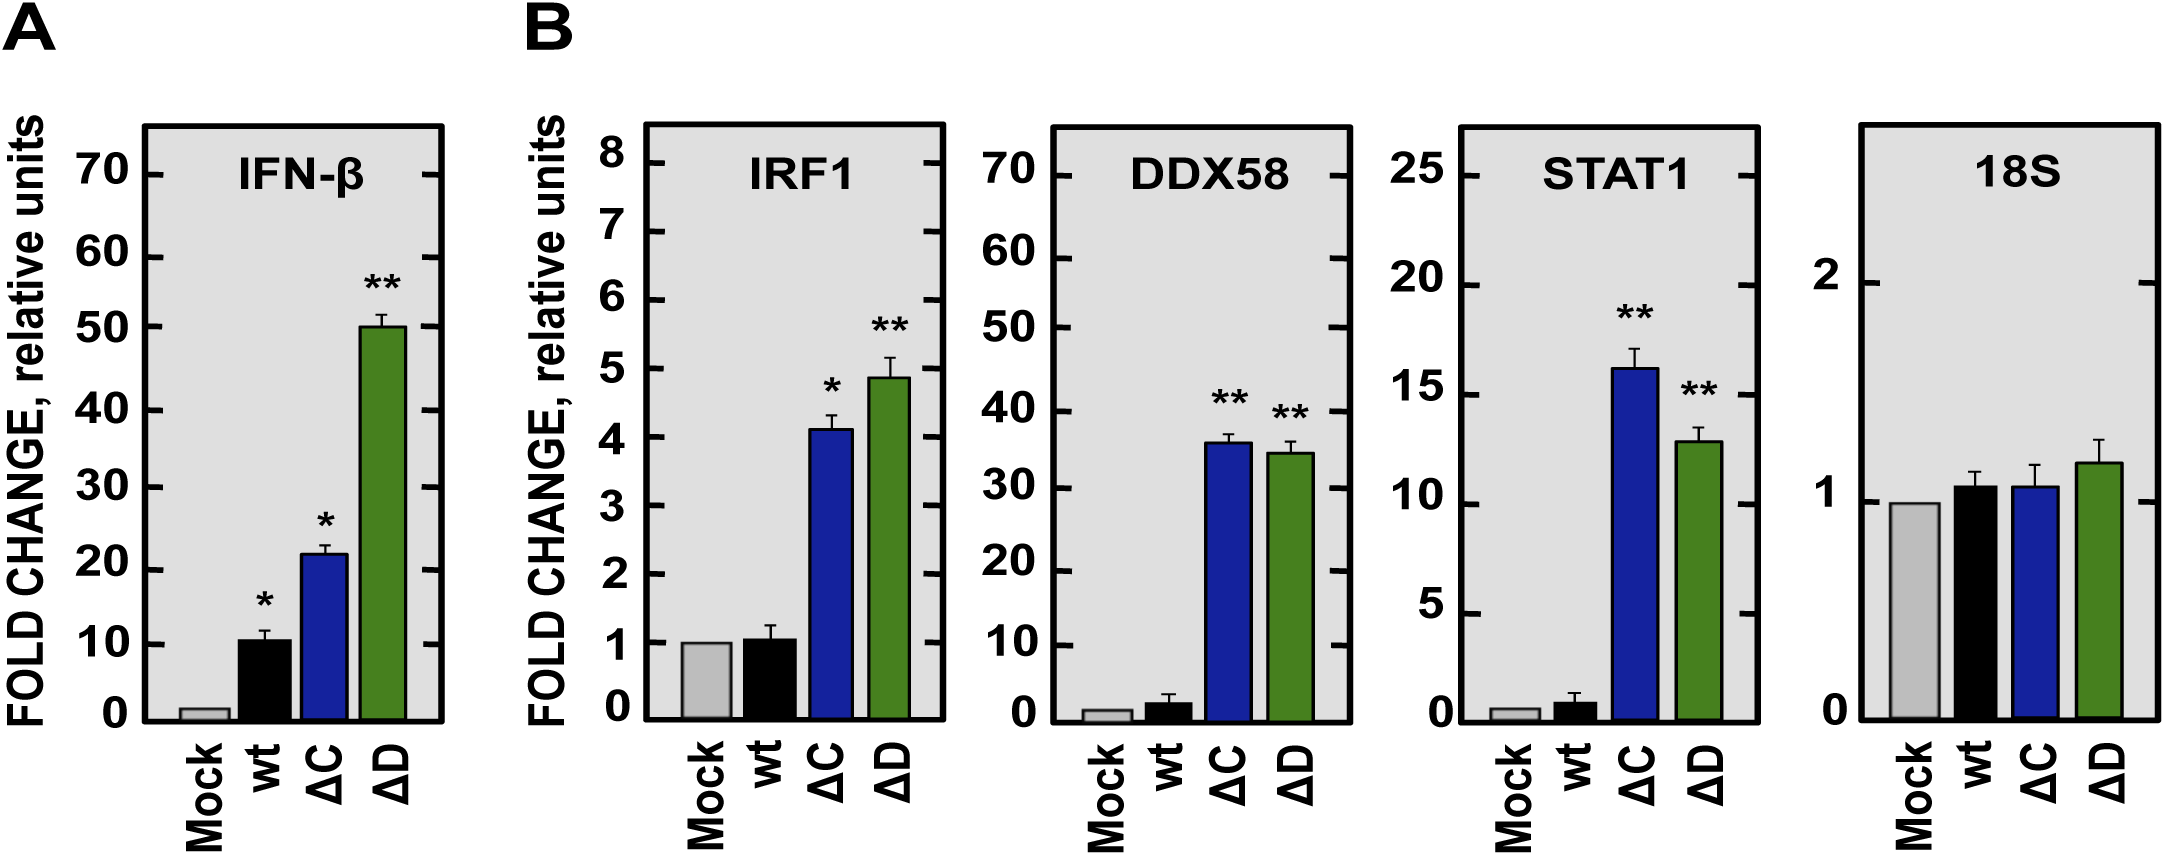 Expression of IFN-β and ISGs in SARS-CoV-nsp1* attenuated mutants infected cells.